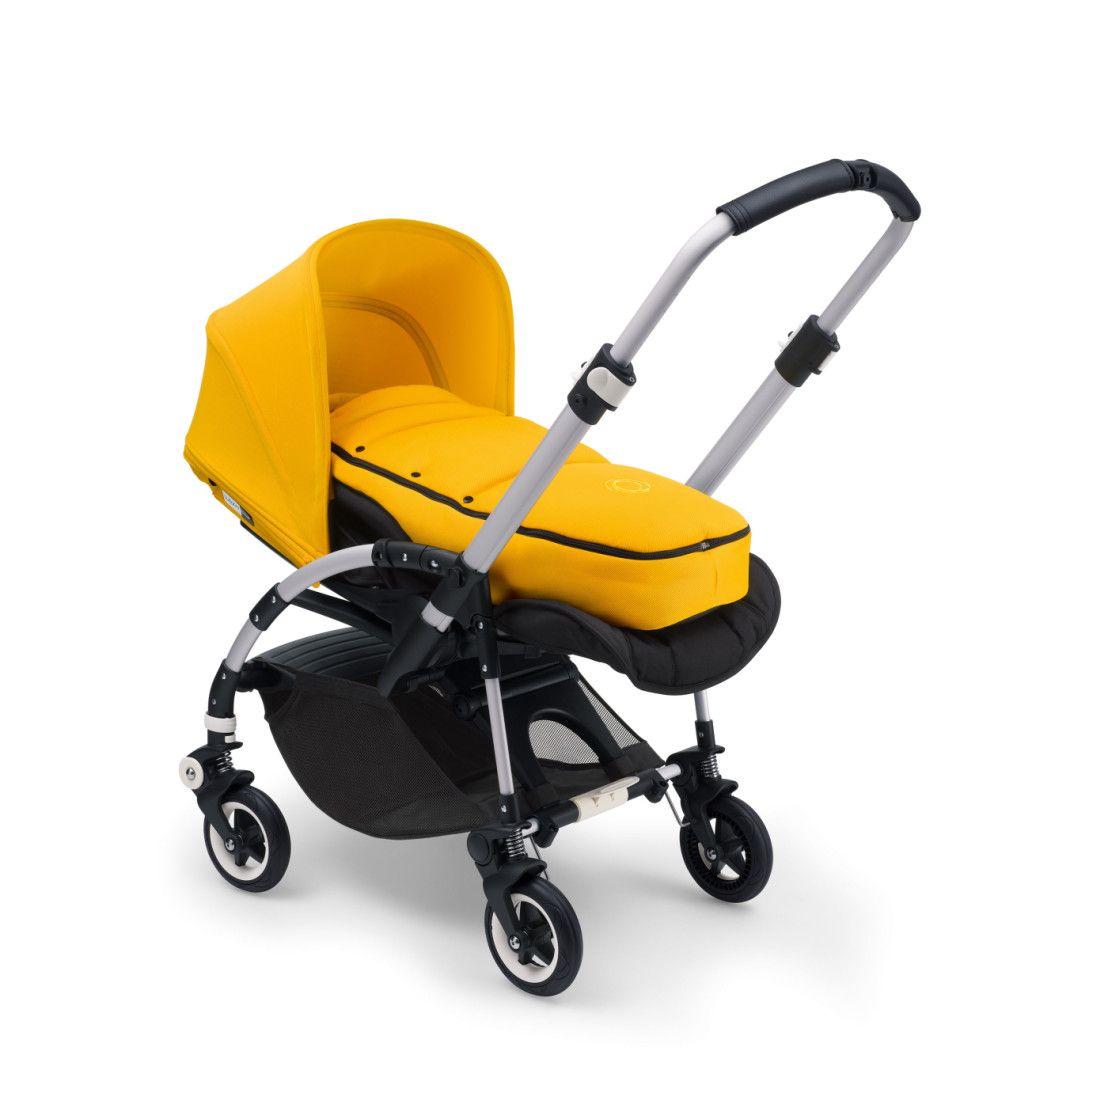 This urban pushchair is perfect for exploring the city